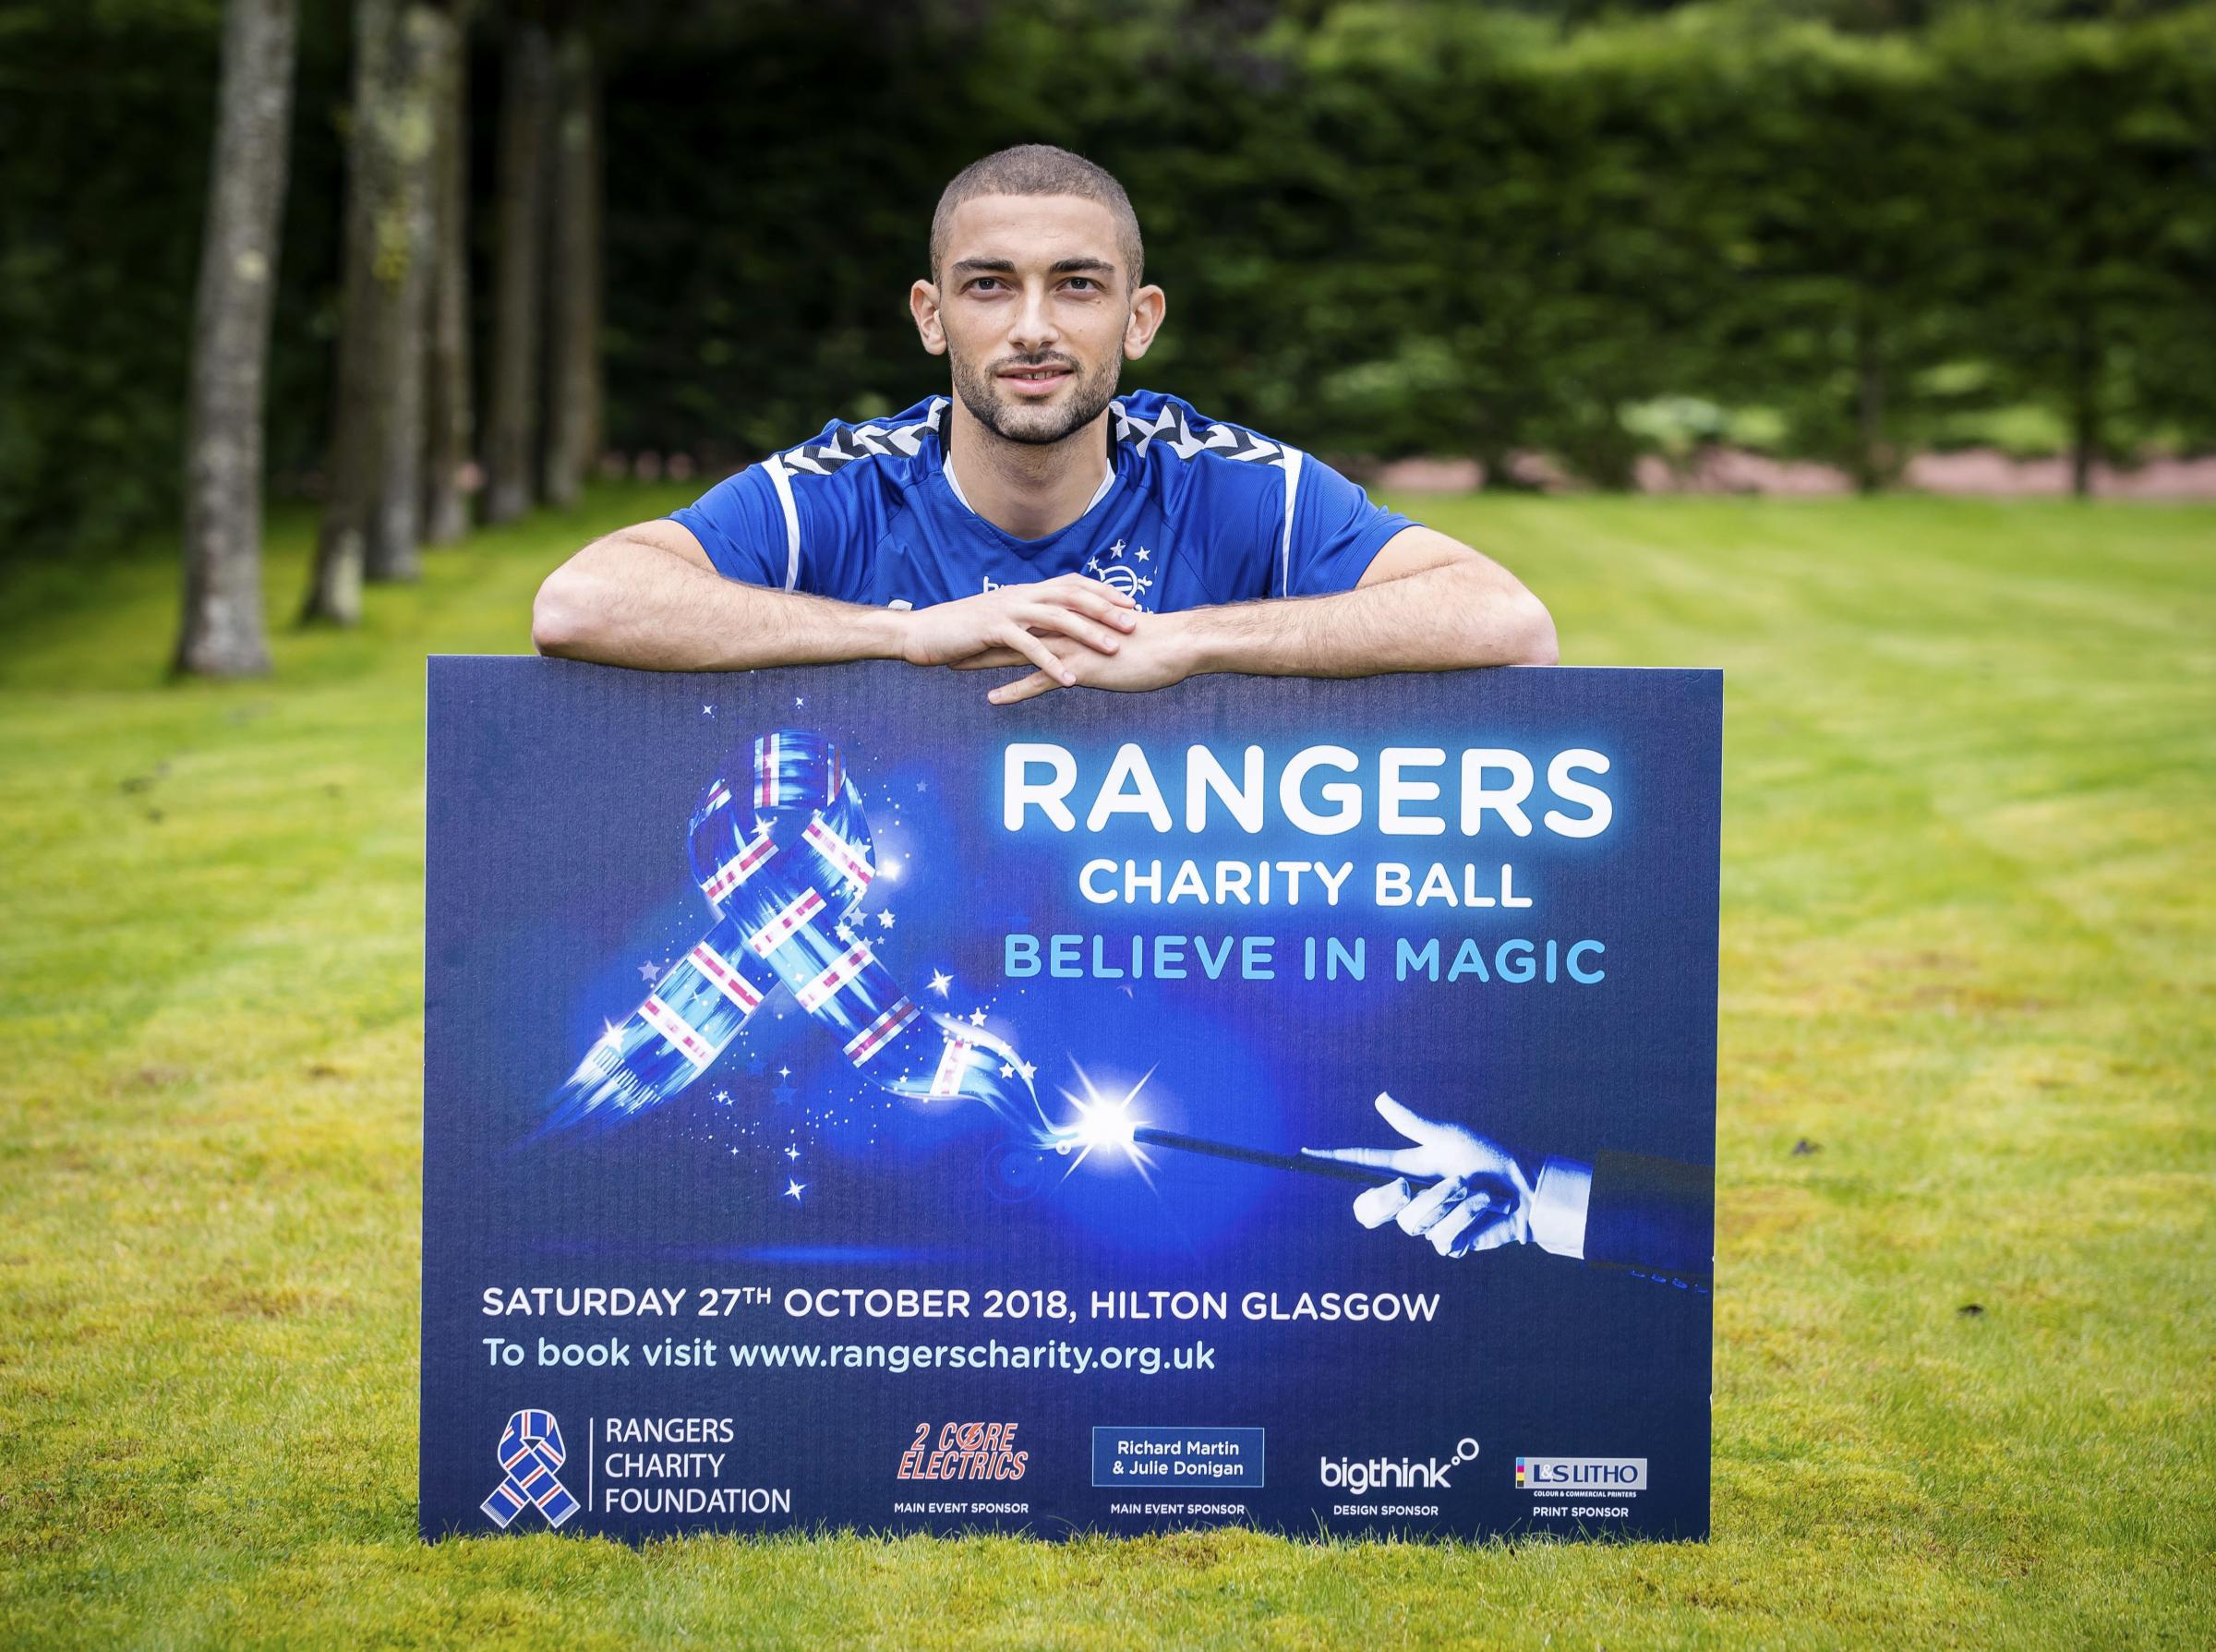 14/09/18 . HUMMEL TRAINING CENTRE - MILNGAVIE . Rangers' Eros Grezda promotes the Rangers Charity Foundation 'Believe in Magic' Charity Ball.